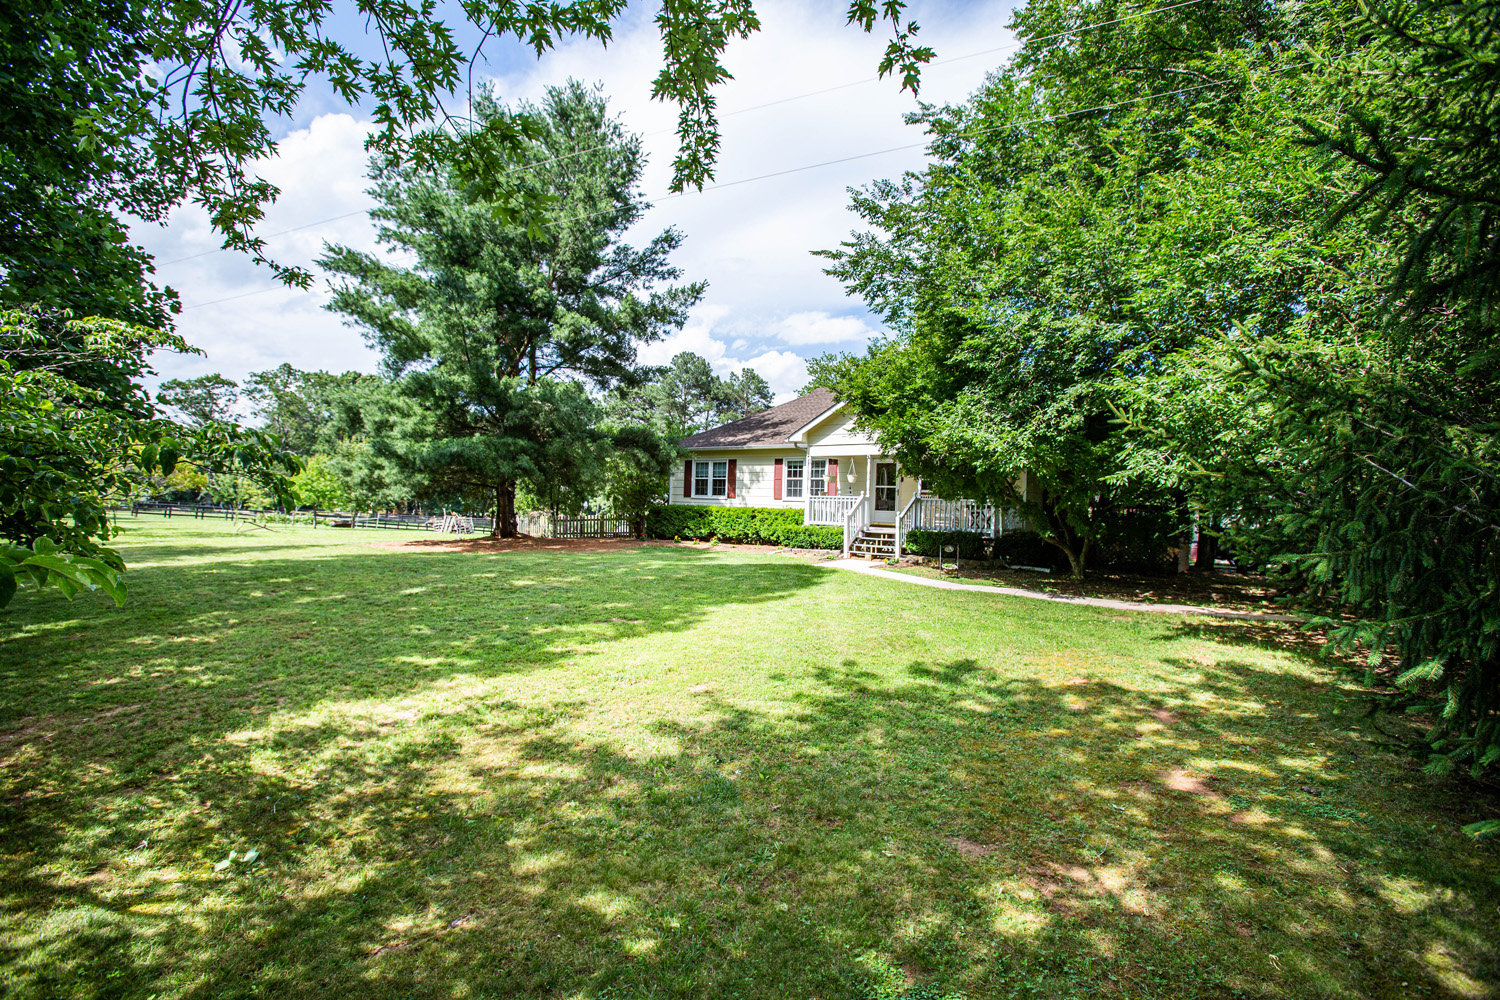 3 BR/2.5 BA Home w/13 Stall Barn, Outbuildings & Greenhouse on 5.47 +/- Acres in Orange County, VA